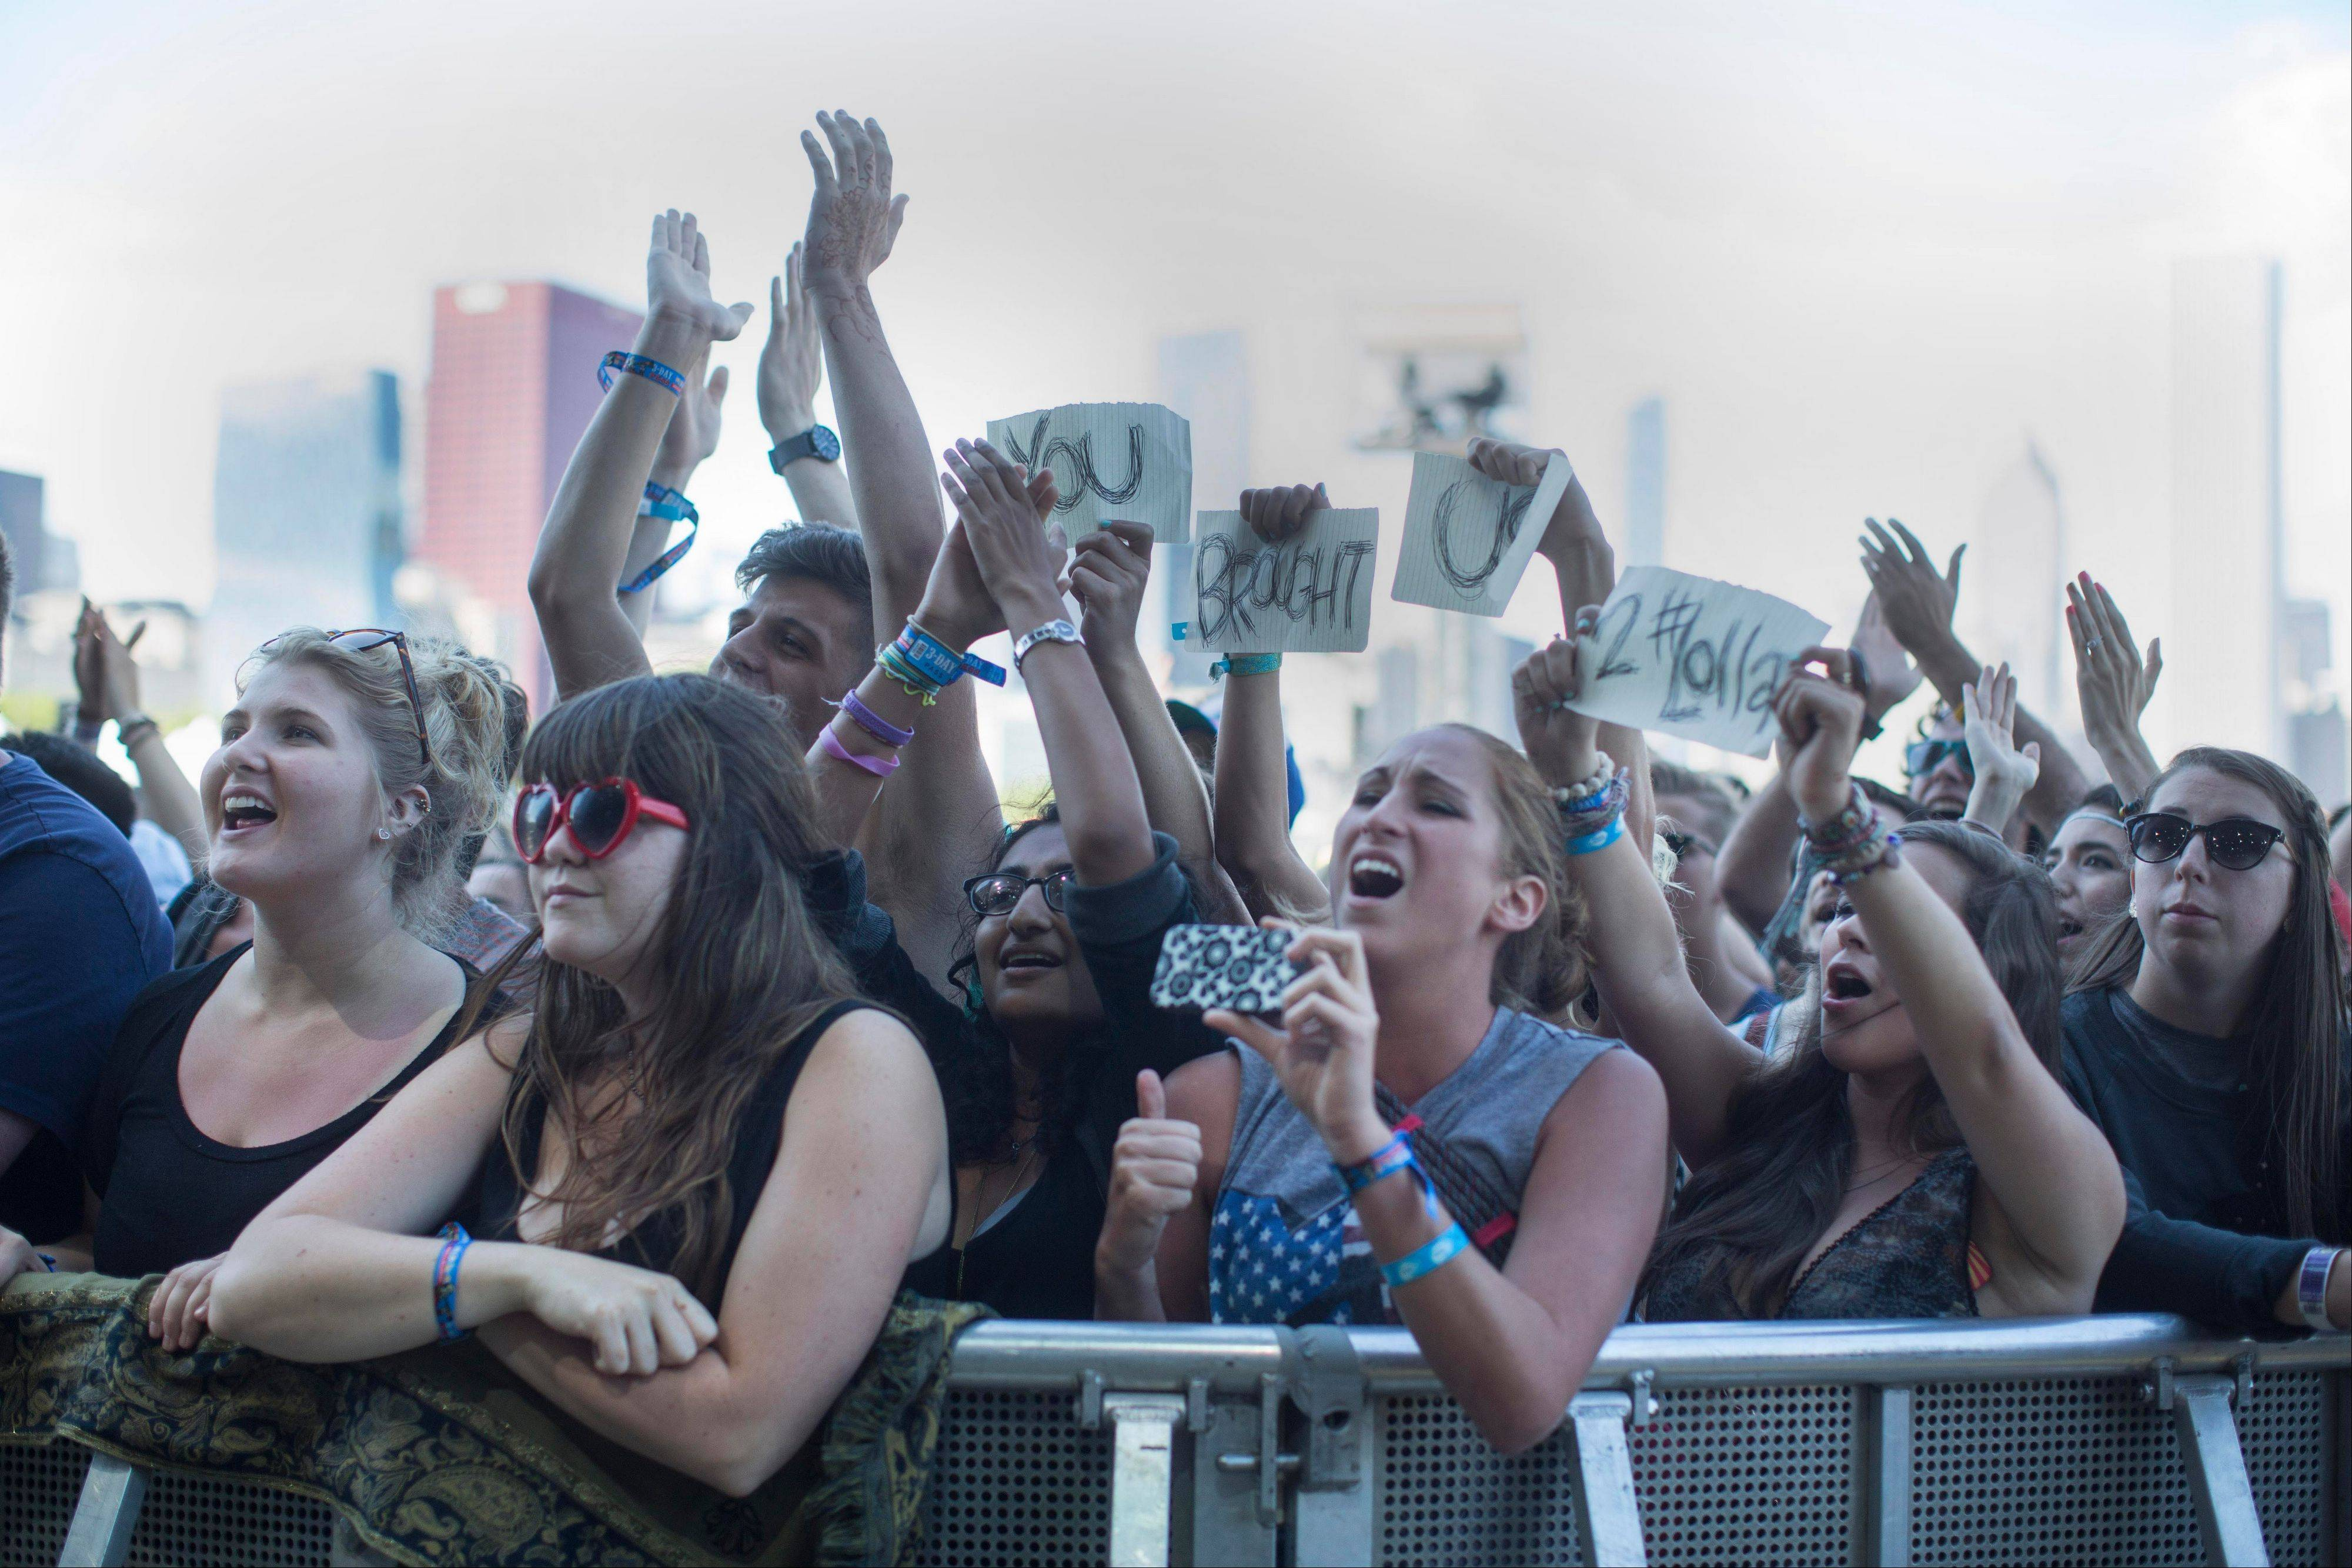 "Ben Howard fans hold up a sign that says ""You Brought Us To Lollapalooza"" during his performance at the Red Bull Stage at the Lollapalooza Festival in Chicago, Saturday, Aug. 3, 2013. The more than two-decade-old festival opened Friday in Chicago's lakefront Grant Park."